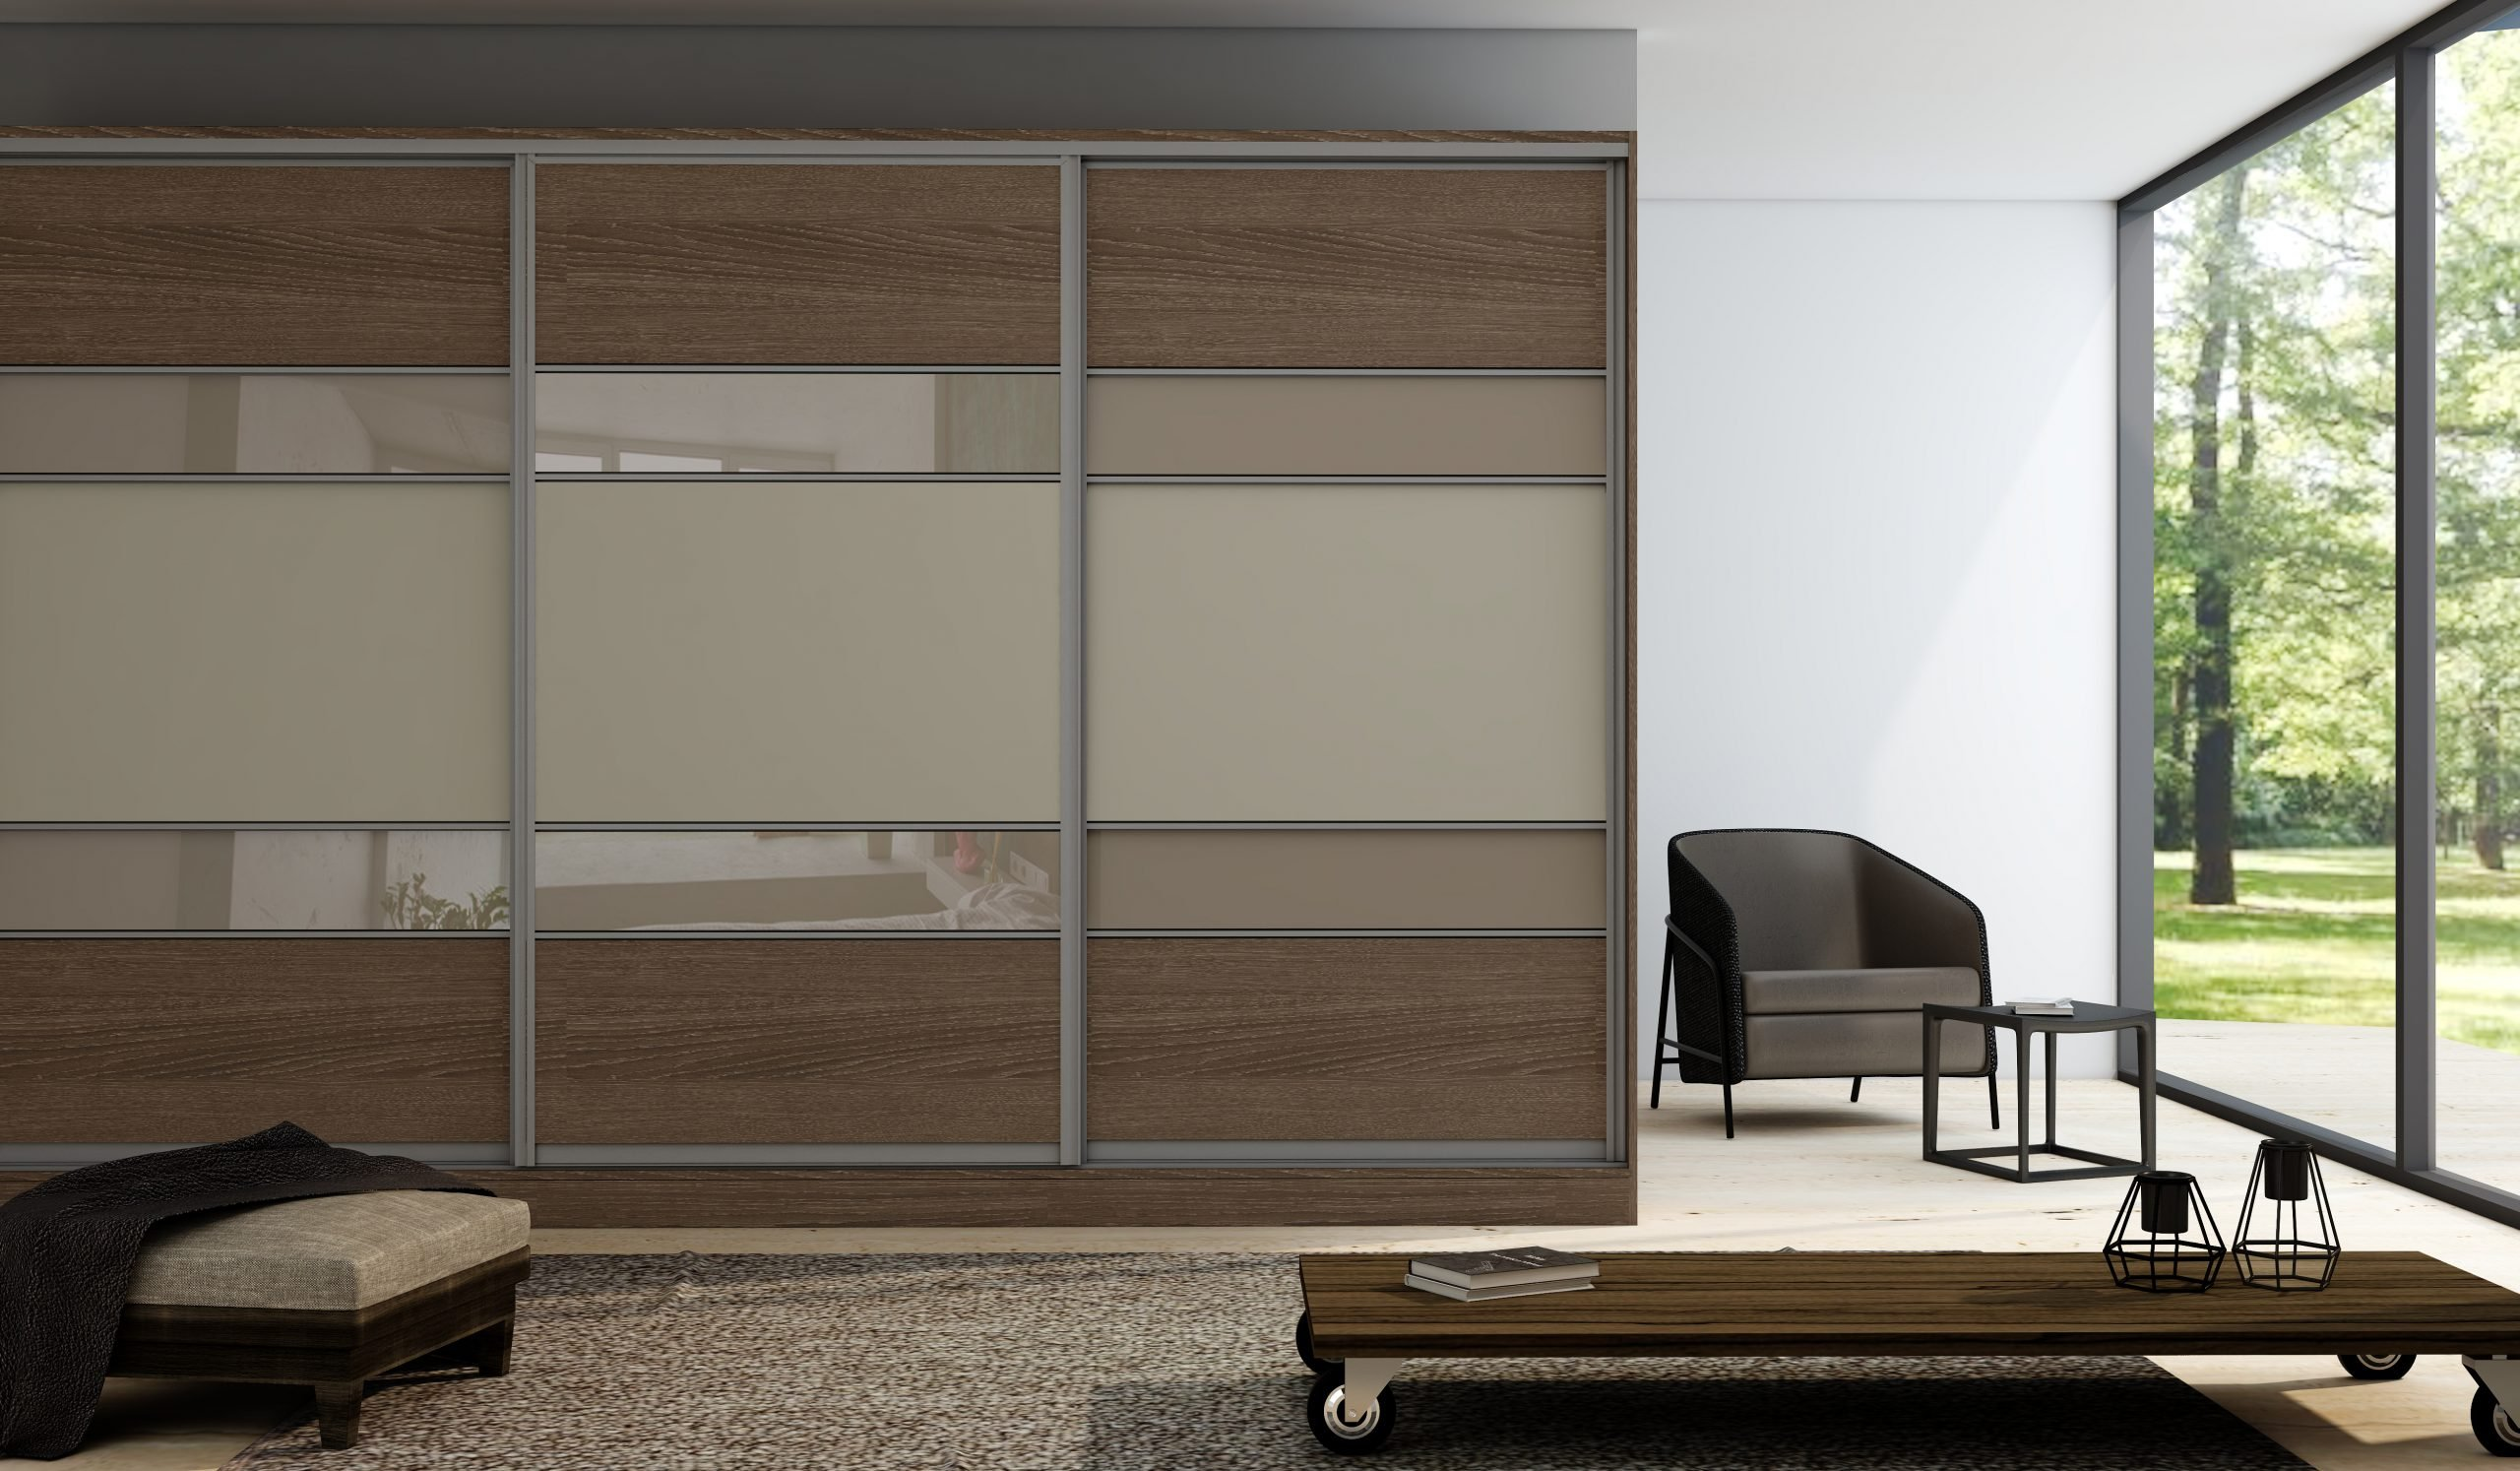 Wooden Sliding Fitted Wardrobe Oak With Five Panels in Combination of Light Woodgrain